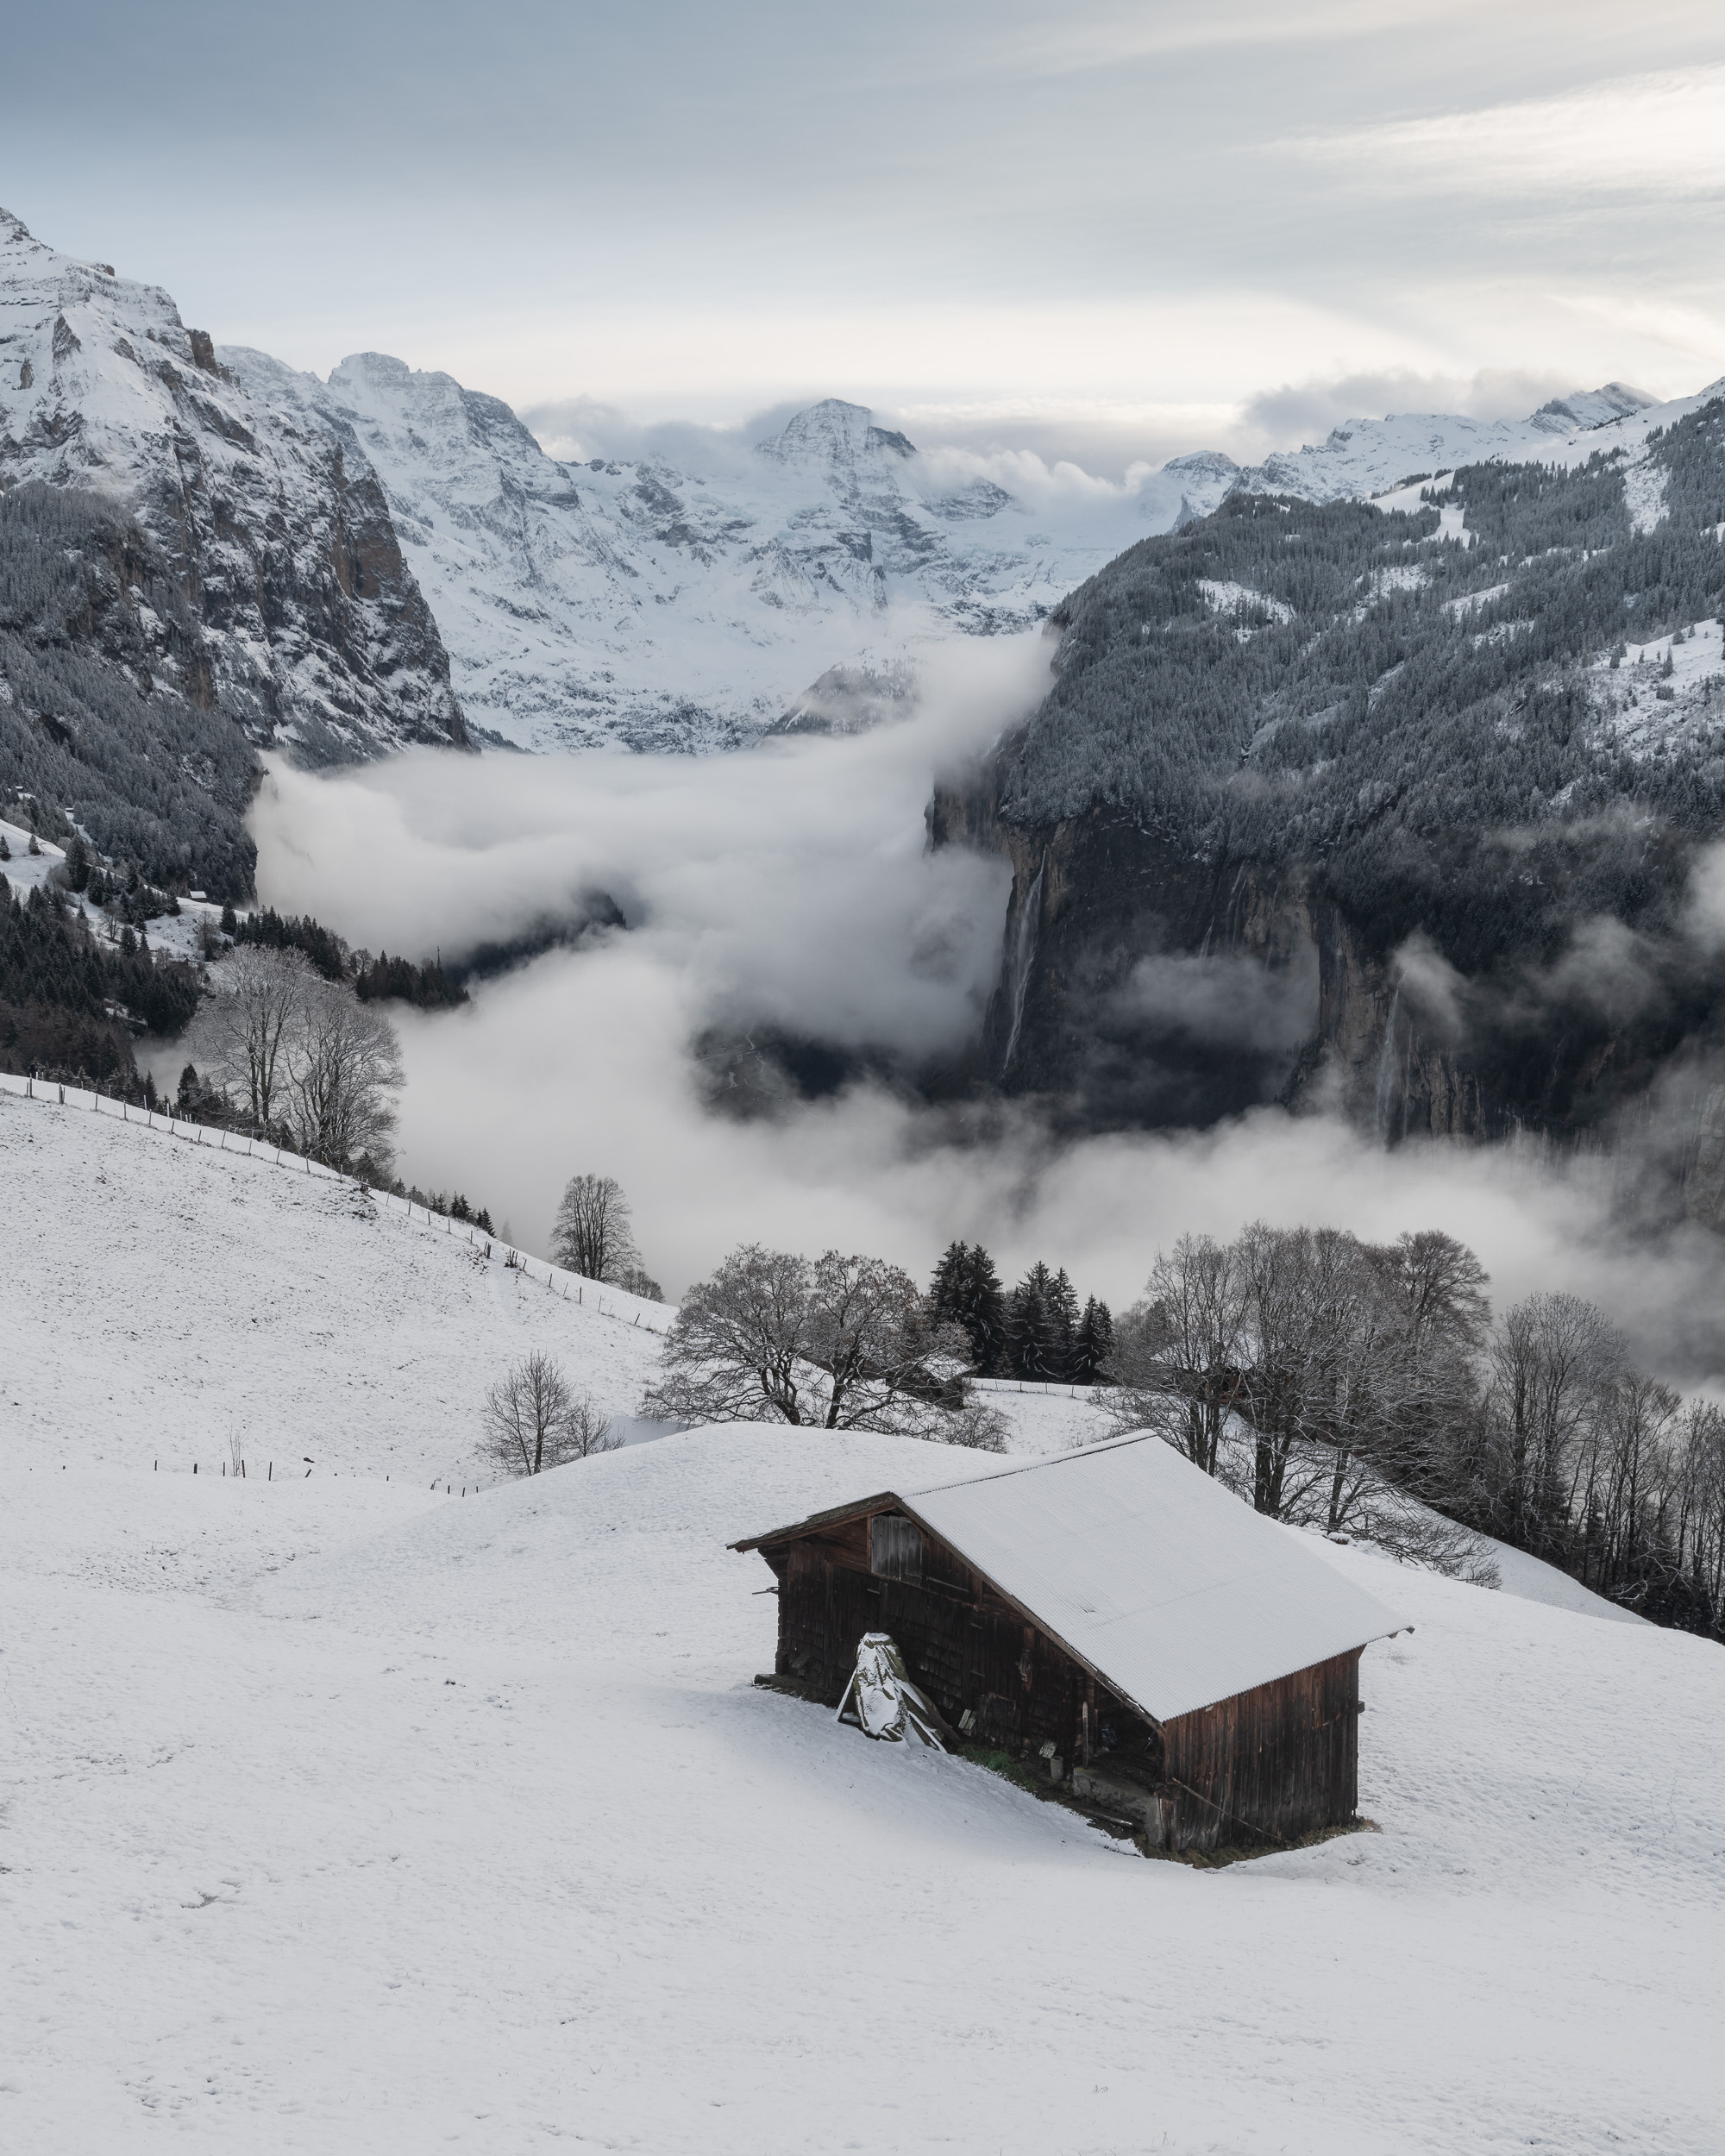 Cloud and Snow Along The Lauterbrunnen Valley, Wengen, Switzerland  - Nikon D850, Nikkor 16-35 mm f/4 VR at 35mm, f/13, 1/20th sec at ISO 64.